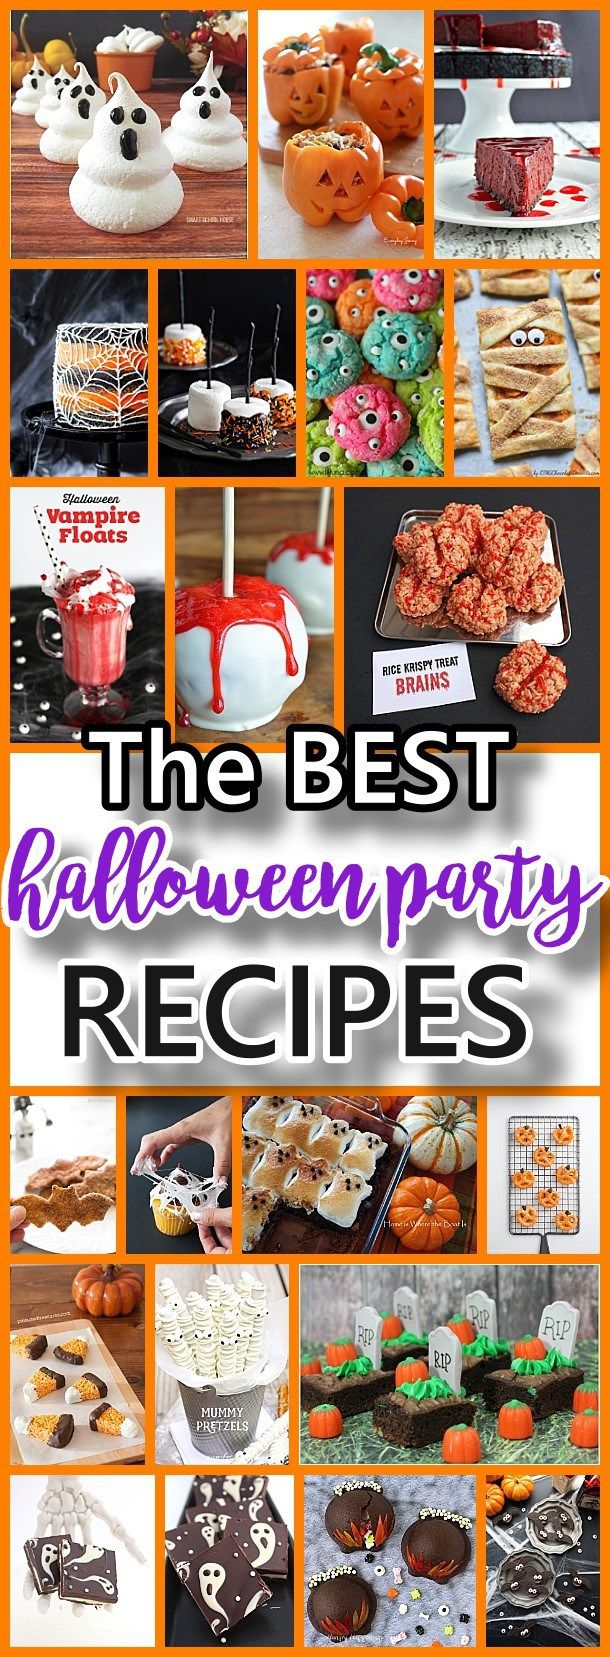 The BEST Halloween Party Recipes {Spooktacular Desserts, Drinks, Treats, Appetizers and More!} – Dreaming in DIY